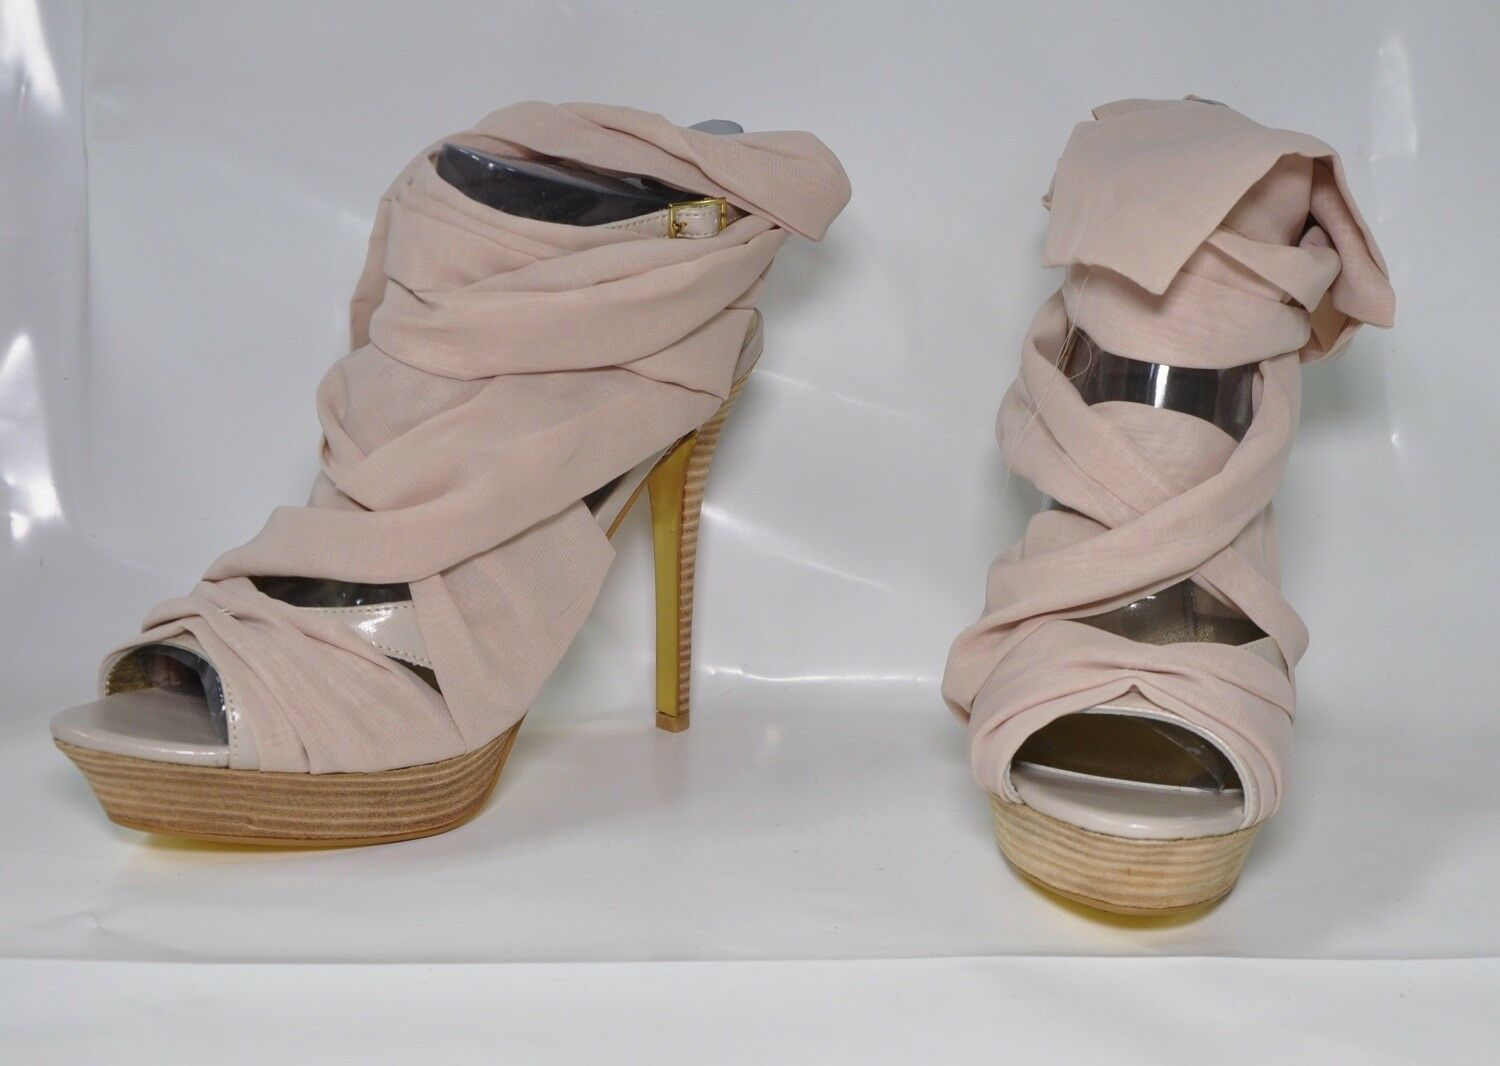 Mariah Carey nude wrap-up hi-heel sandals - Size 11, w 5.25  heel - New